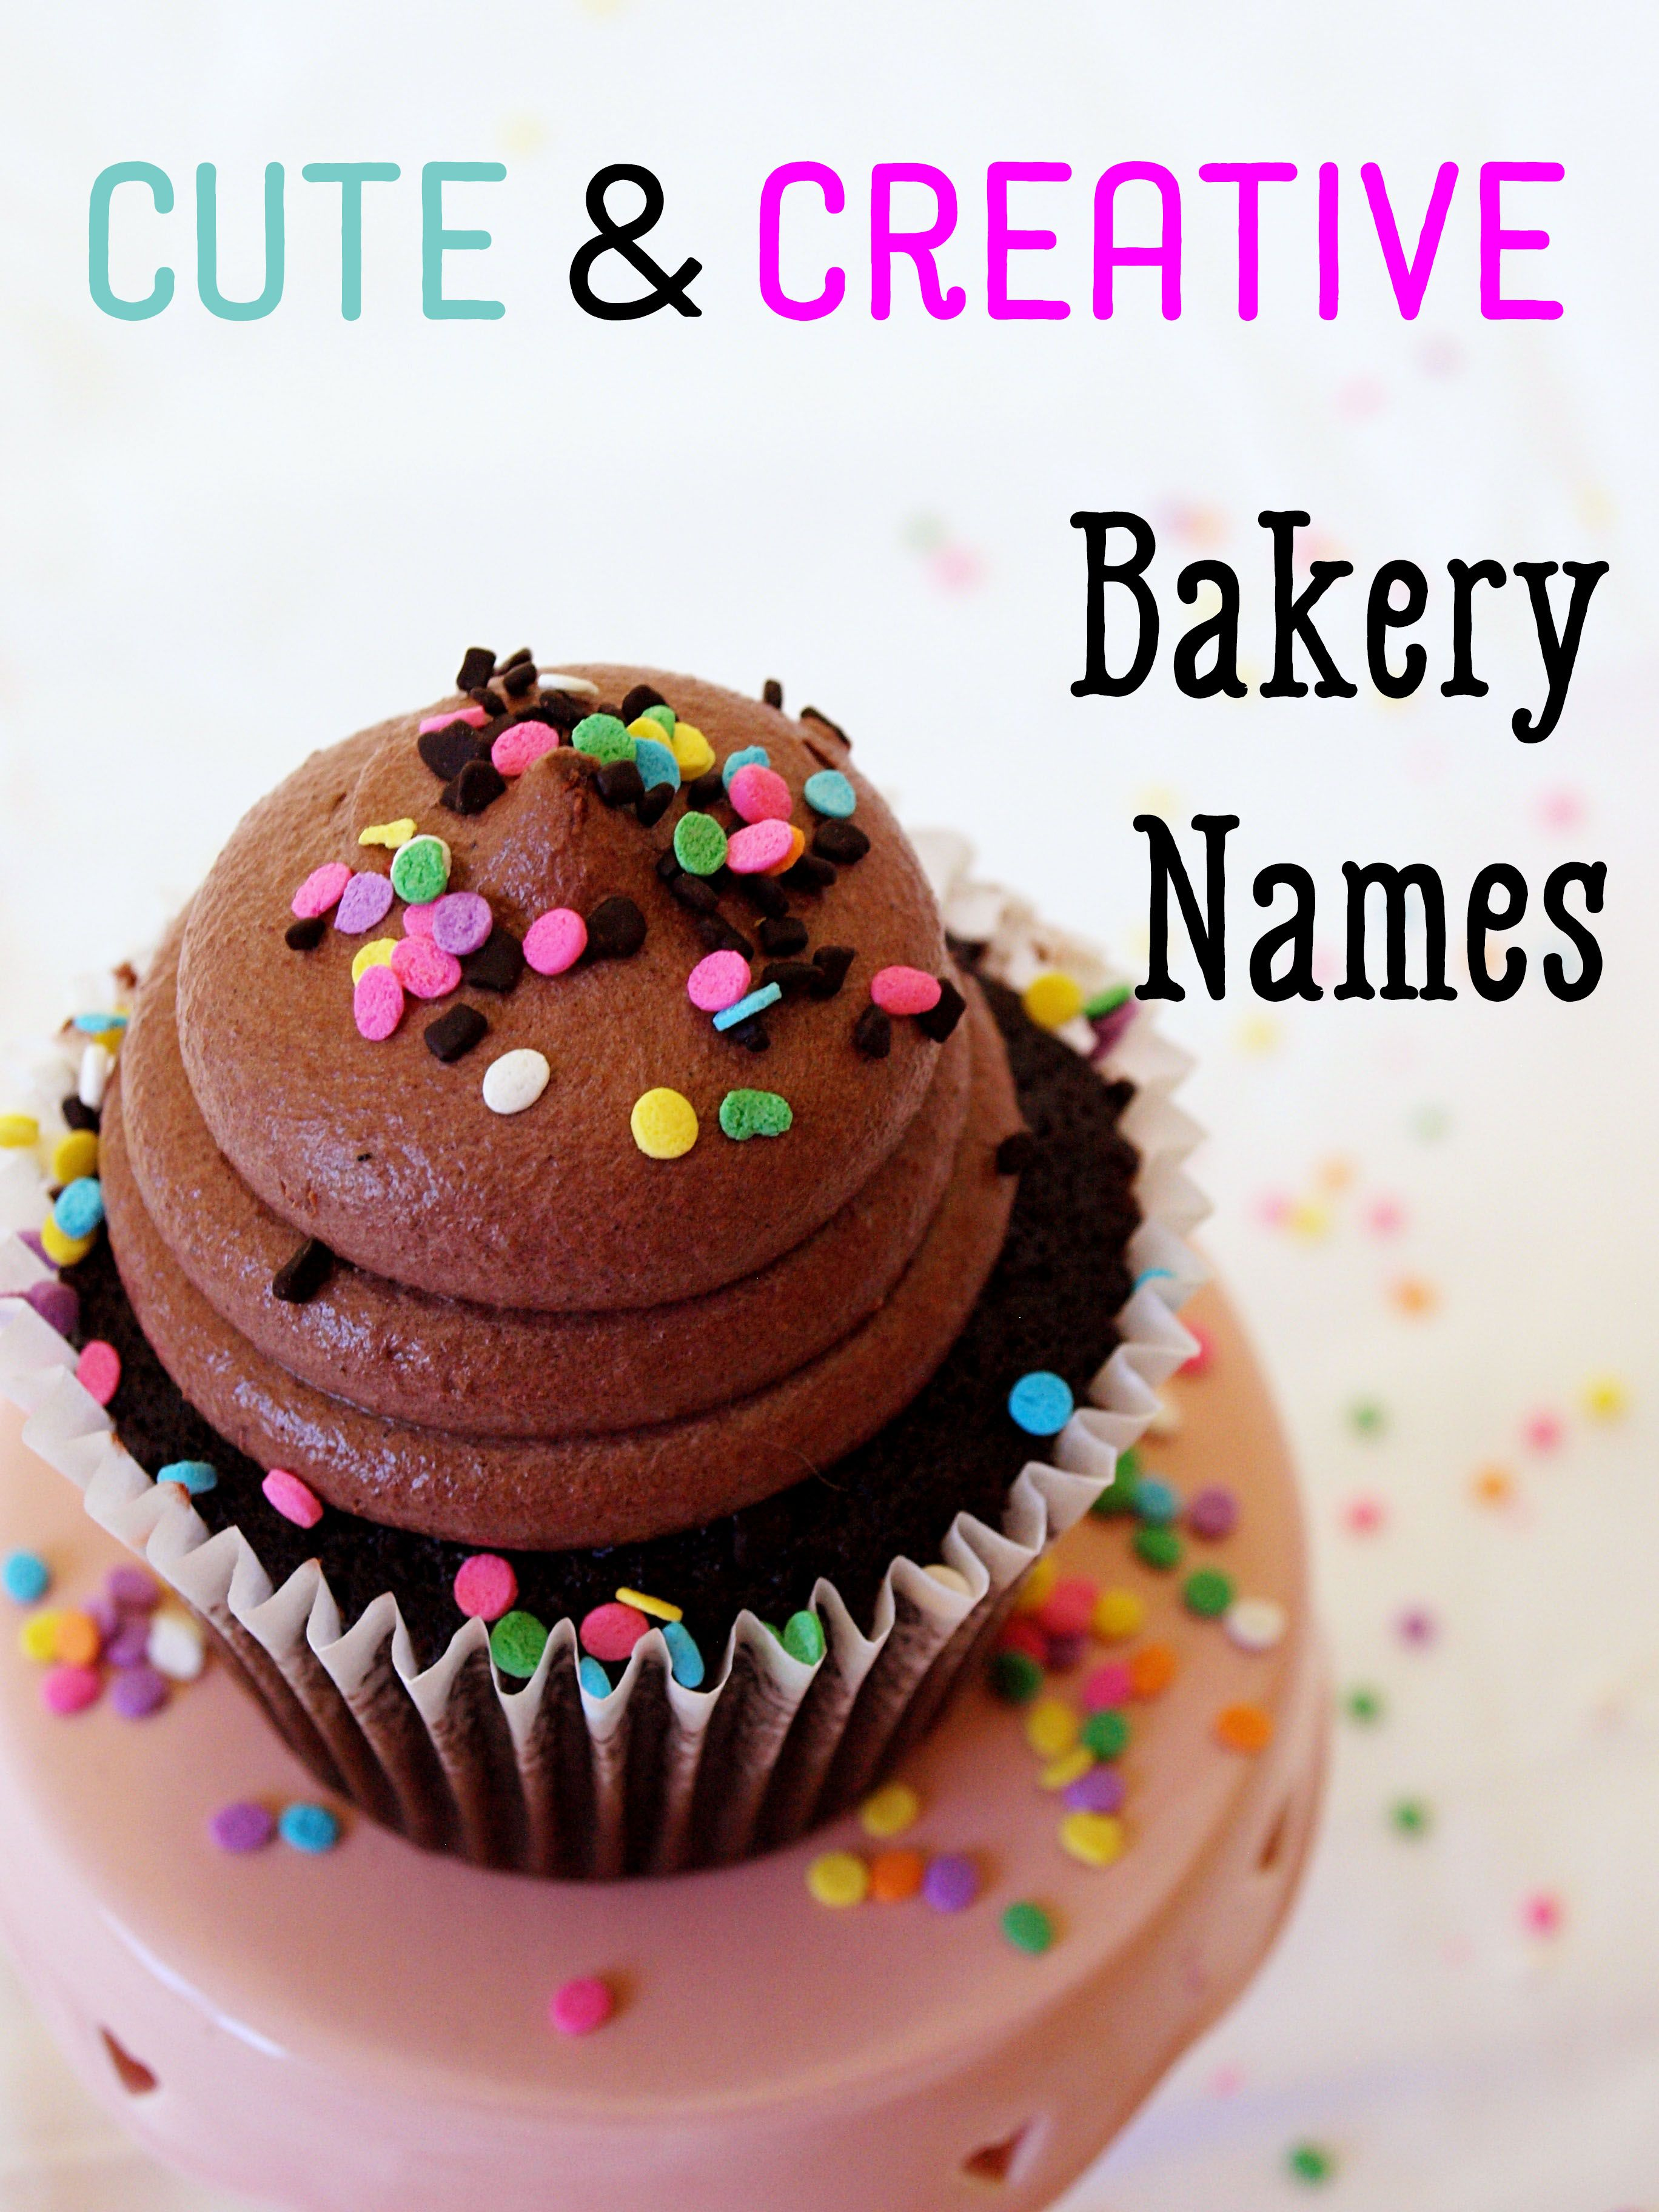 culinary terms related to specialized cakes